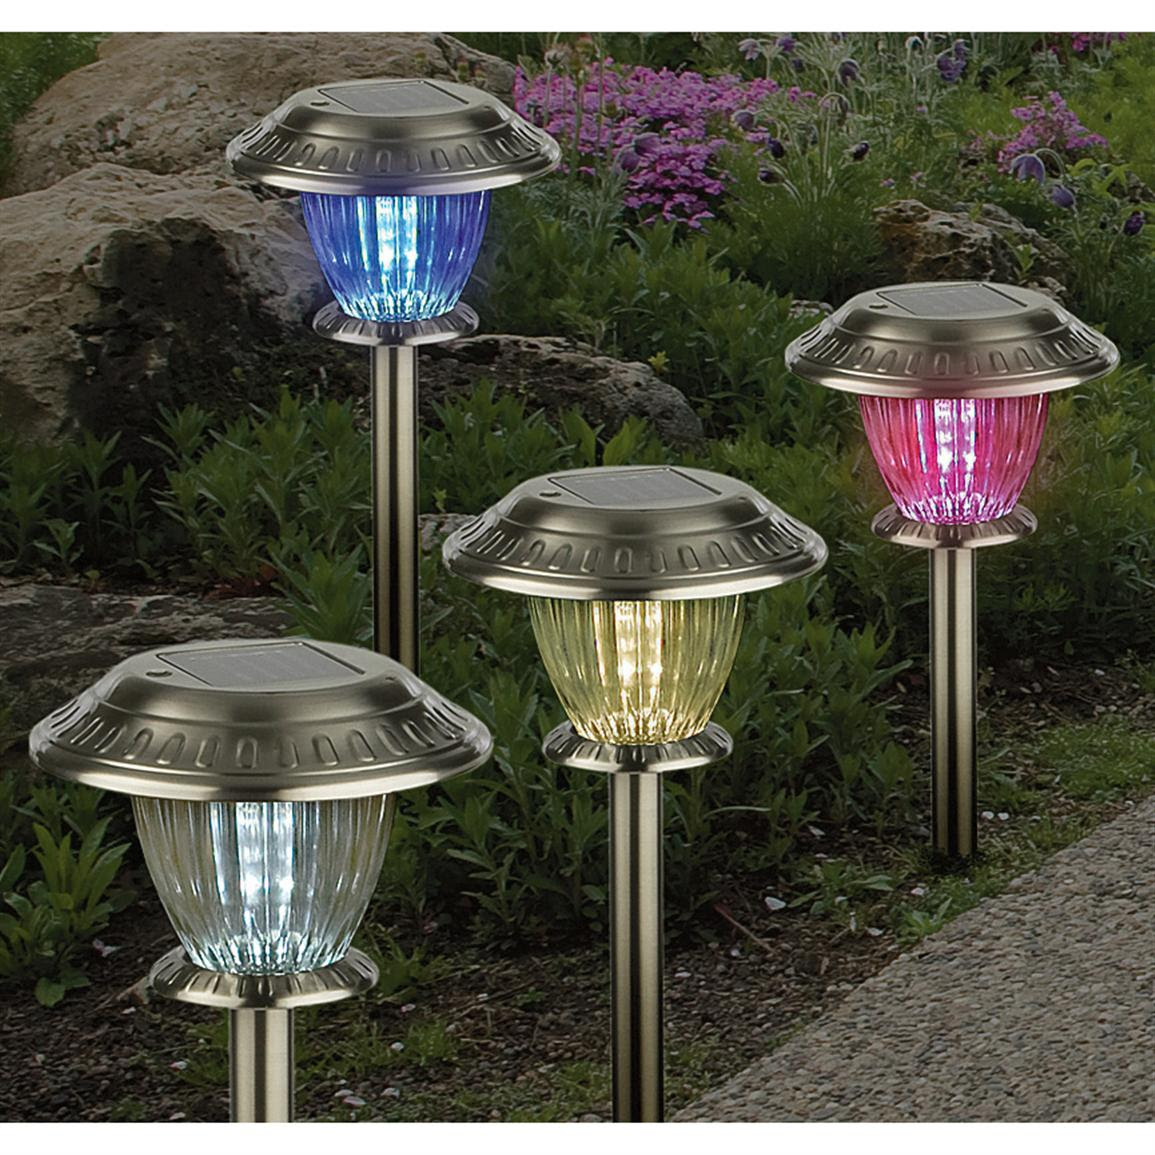 12  Pc. Color Changing Solar Lights Set  164812, Solar  Outdoor Lighting at Sportsmans Guide